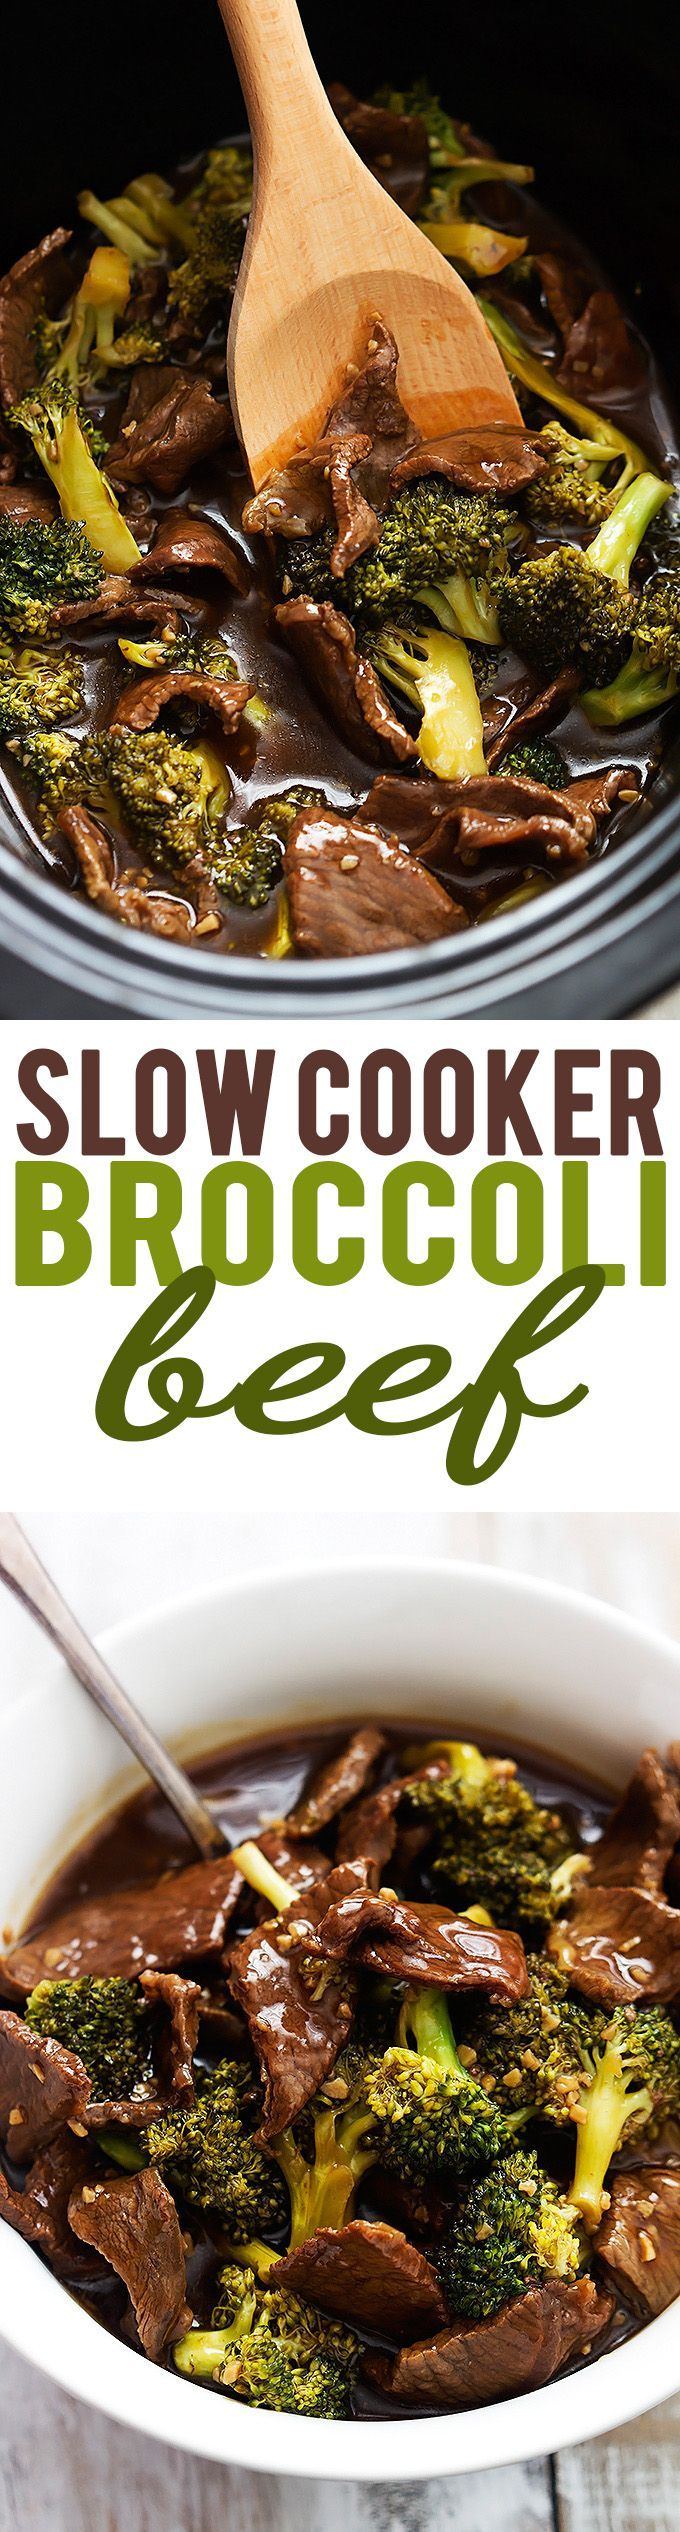 Super easy Slow Cooker Broccoli Beef! The sauce is AMAZING – so much better tasting and healthier than takeout!   | Creme de la